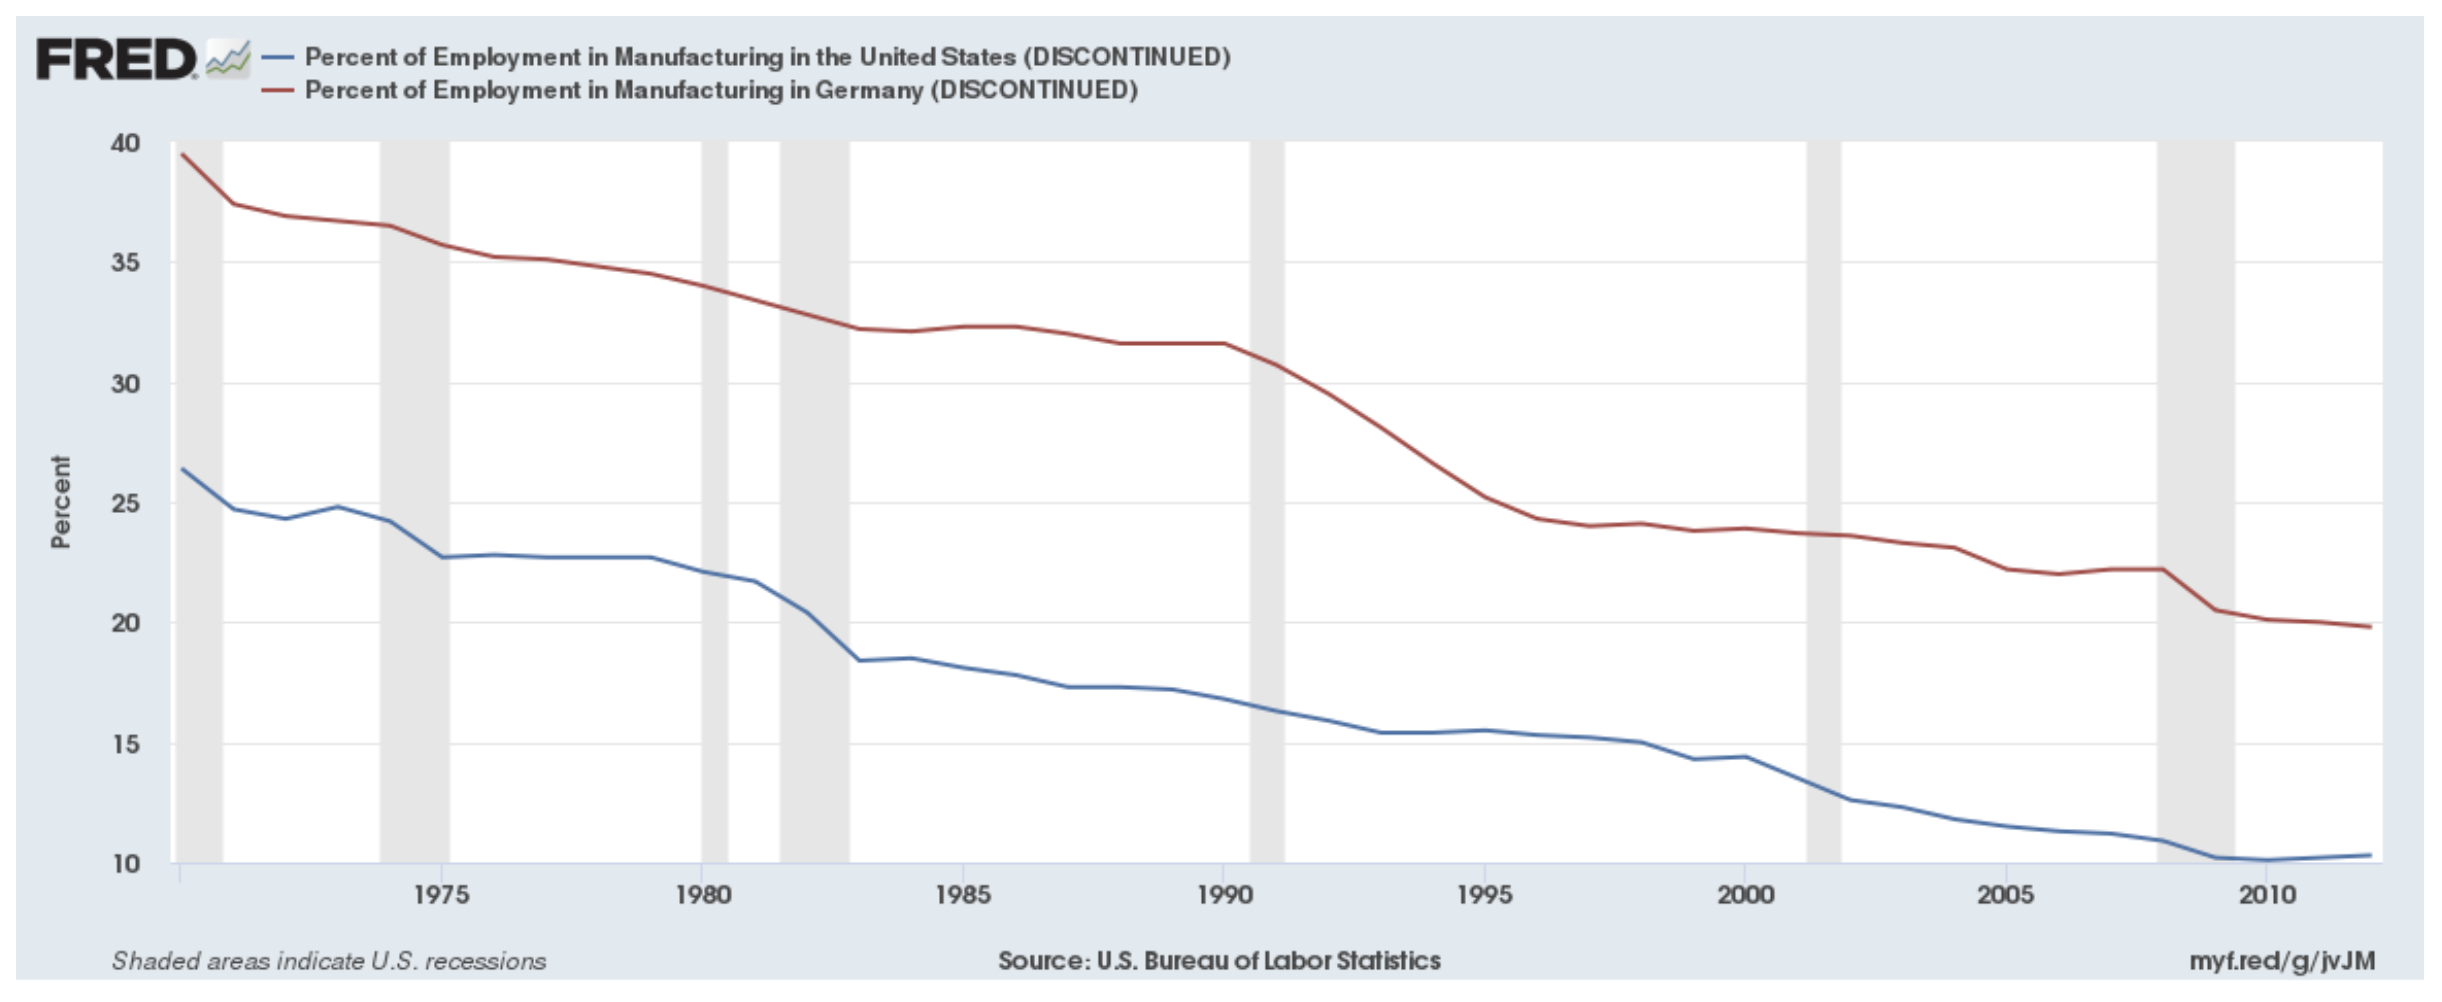 Percentage of employment in manufacturing in the US and Germany